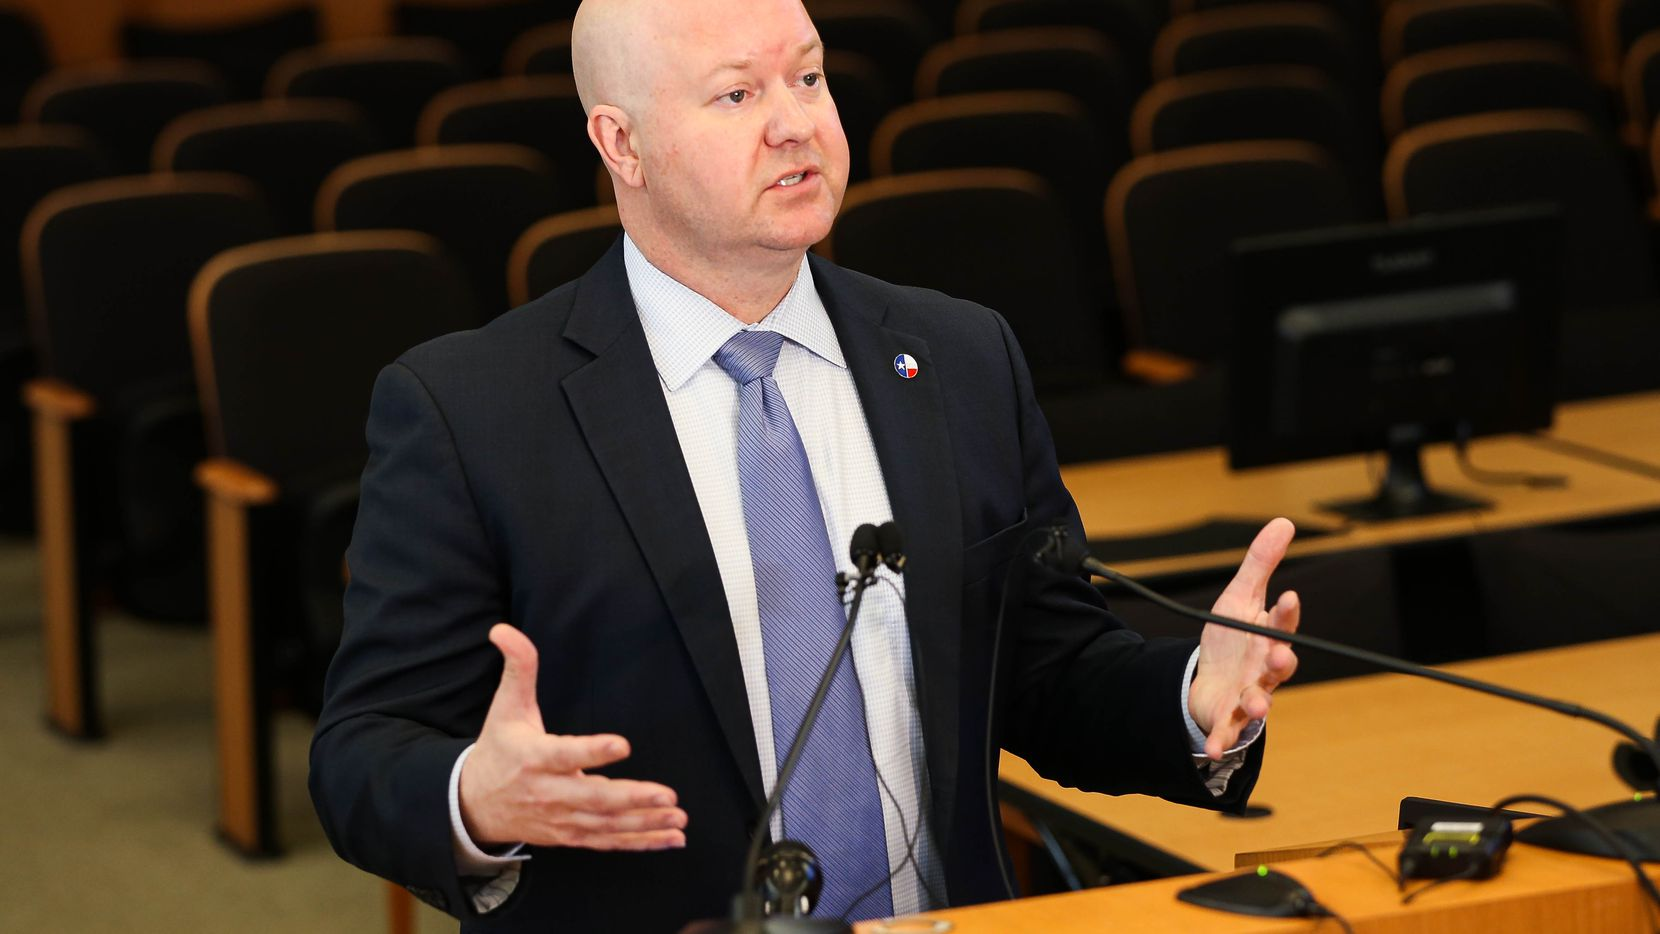 In this file photo, Collin County Judge Chris Hill speaks about the coronavirus at a March 9 press conference 9 in McKinney.